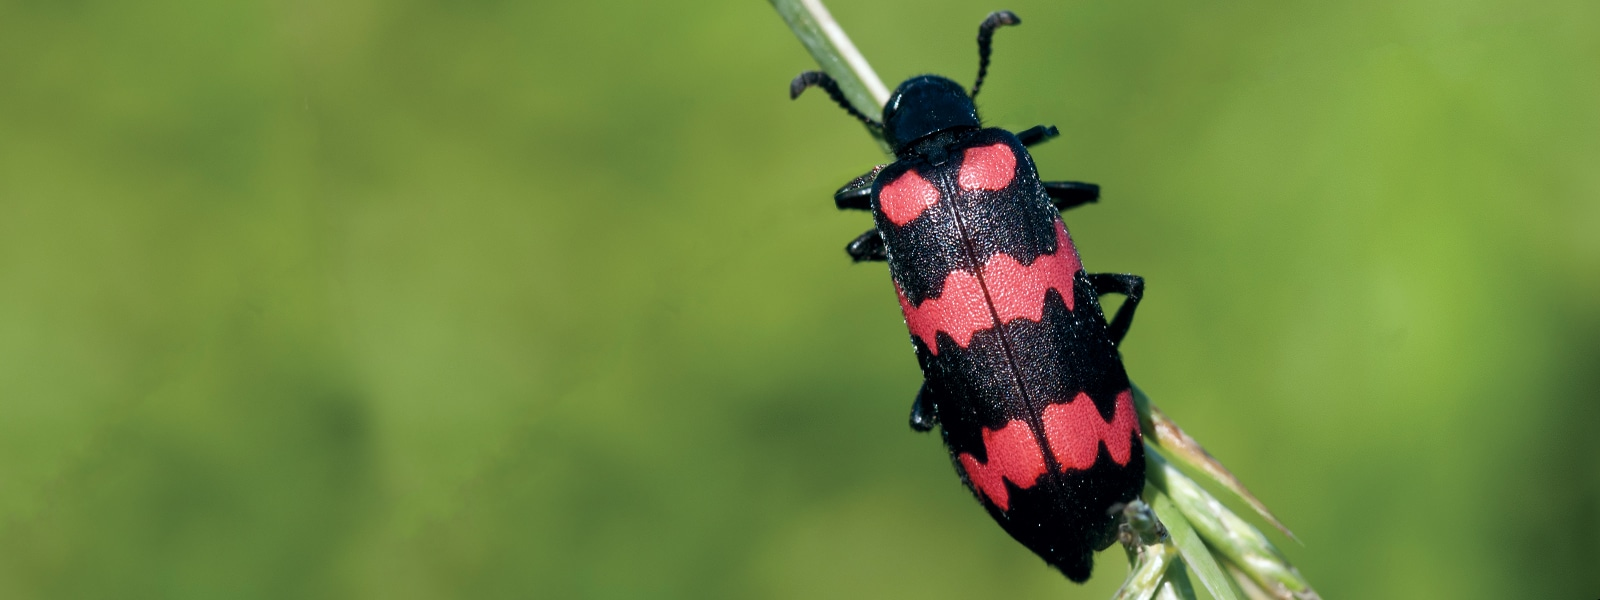 Cantharidin Toxicosis from Blister Beetles in Horses